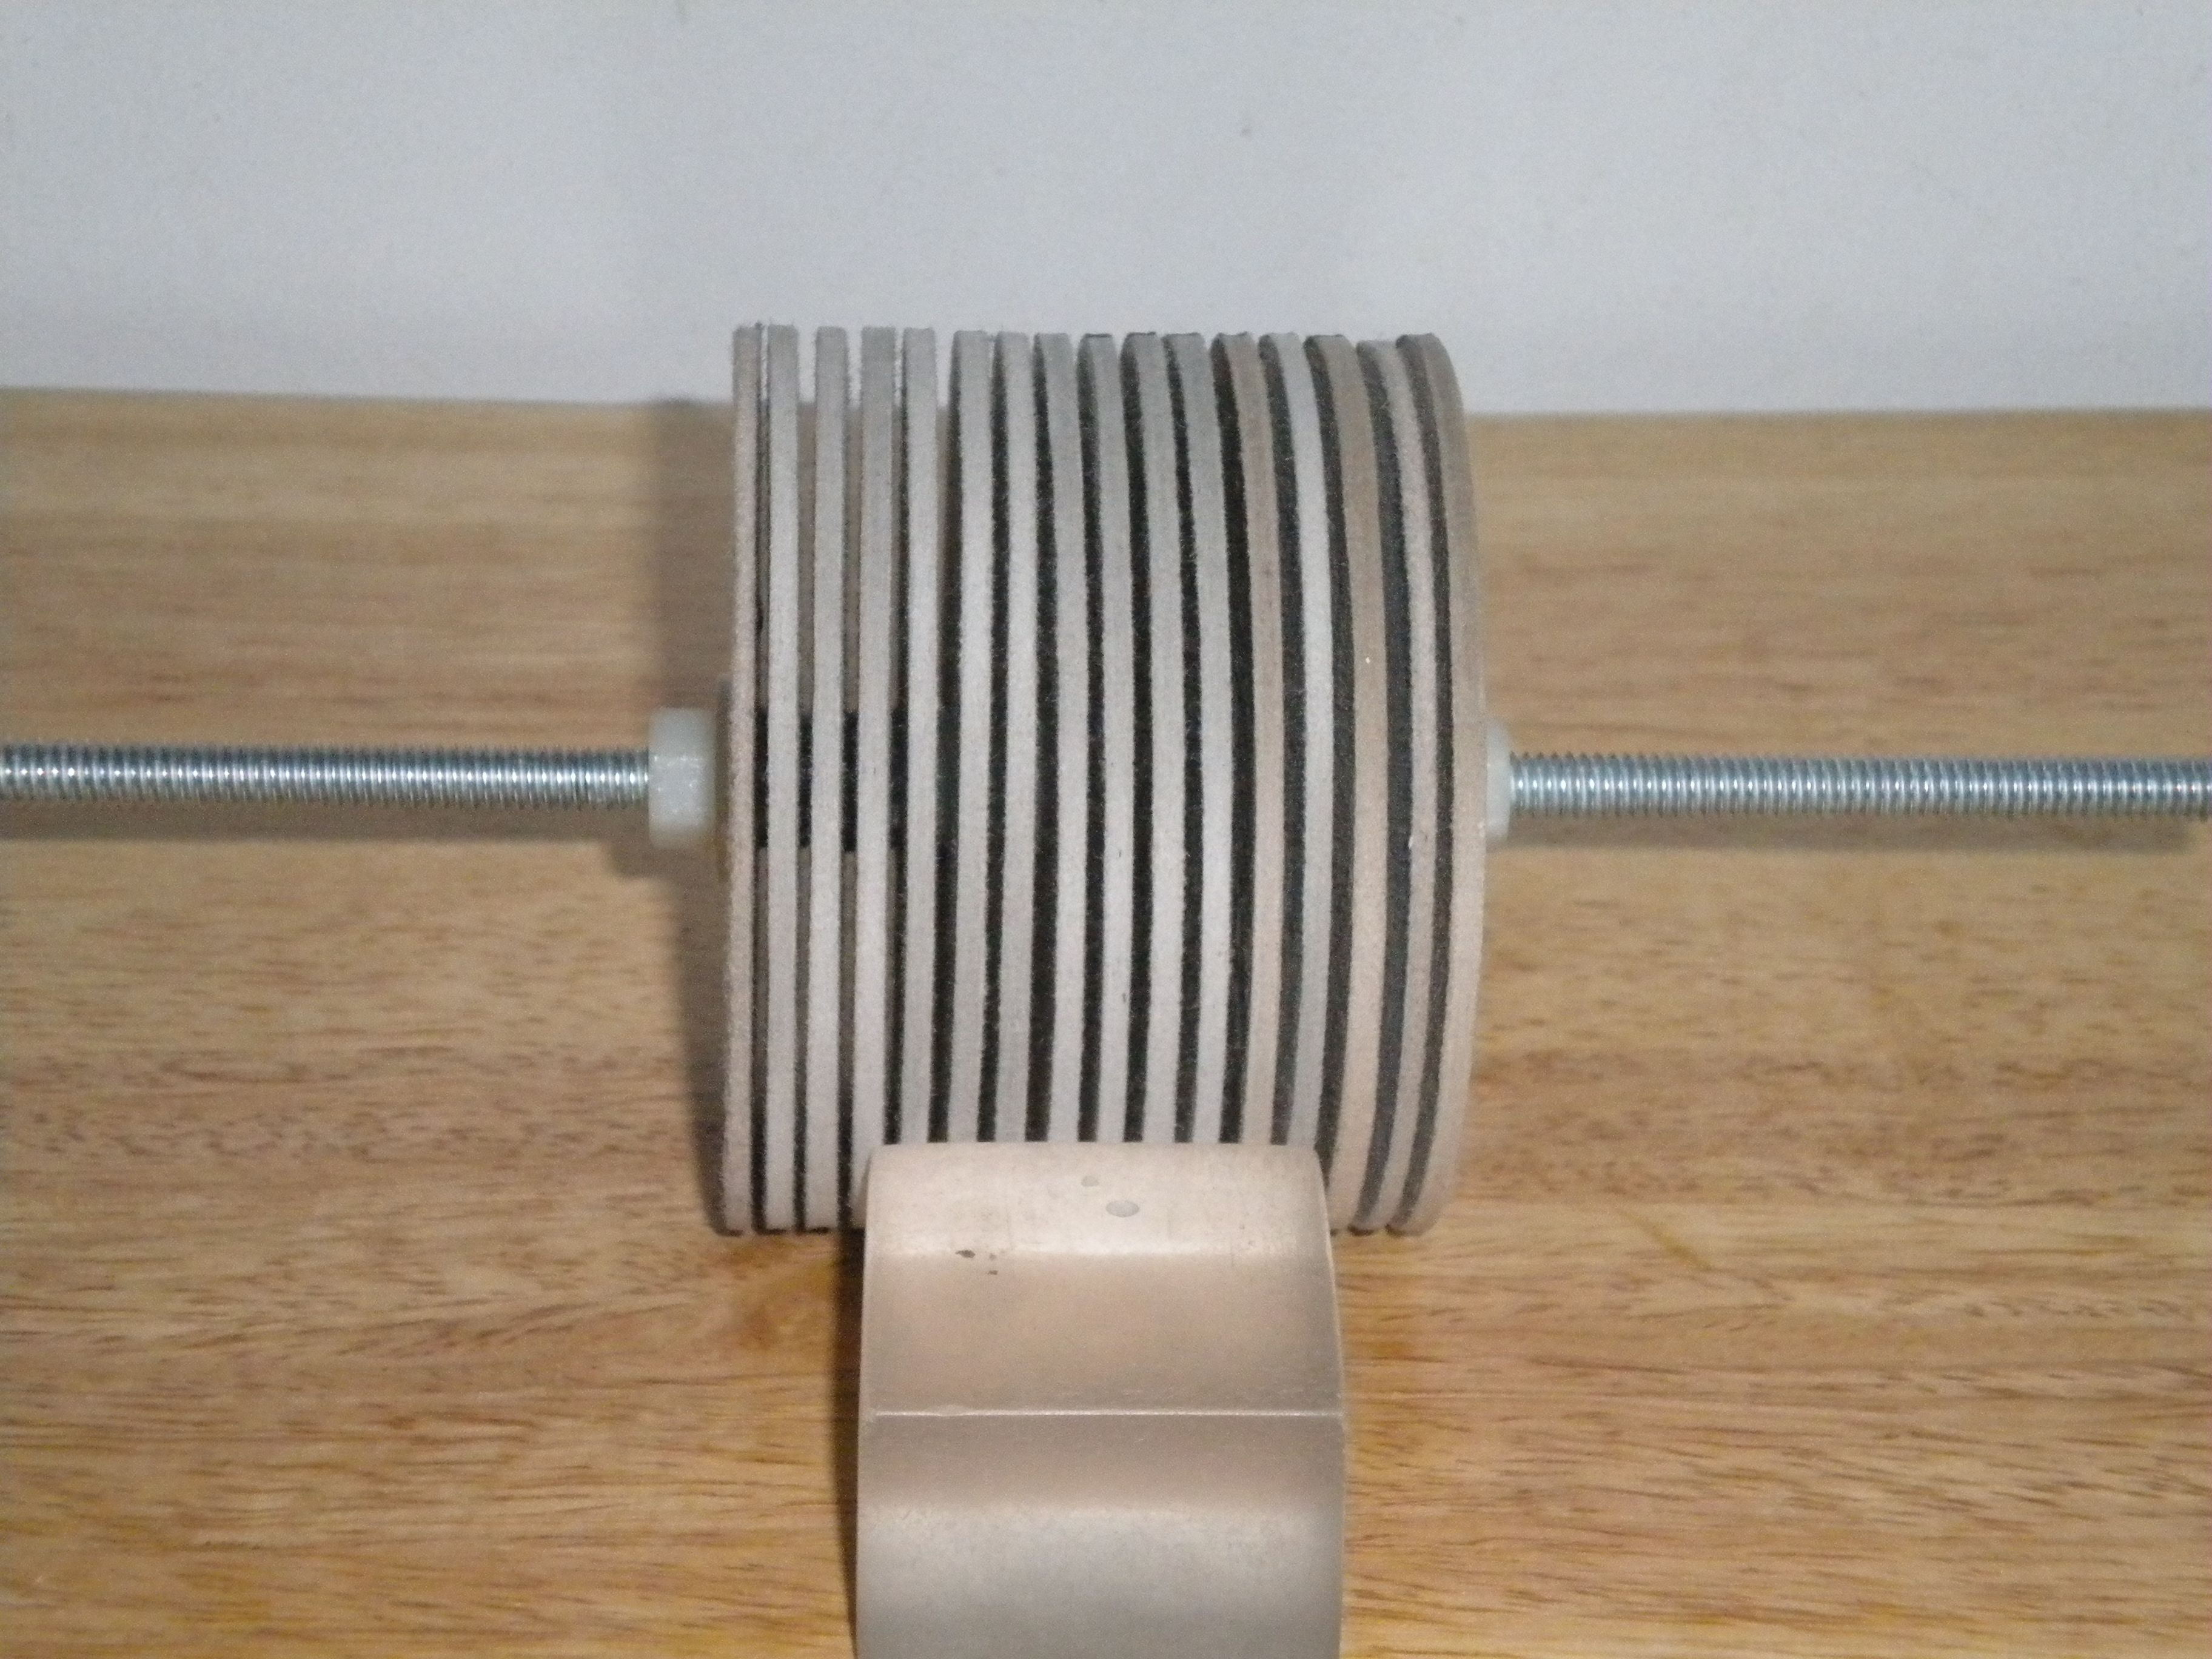 Picture of Rotor Assembly